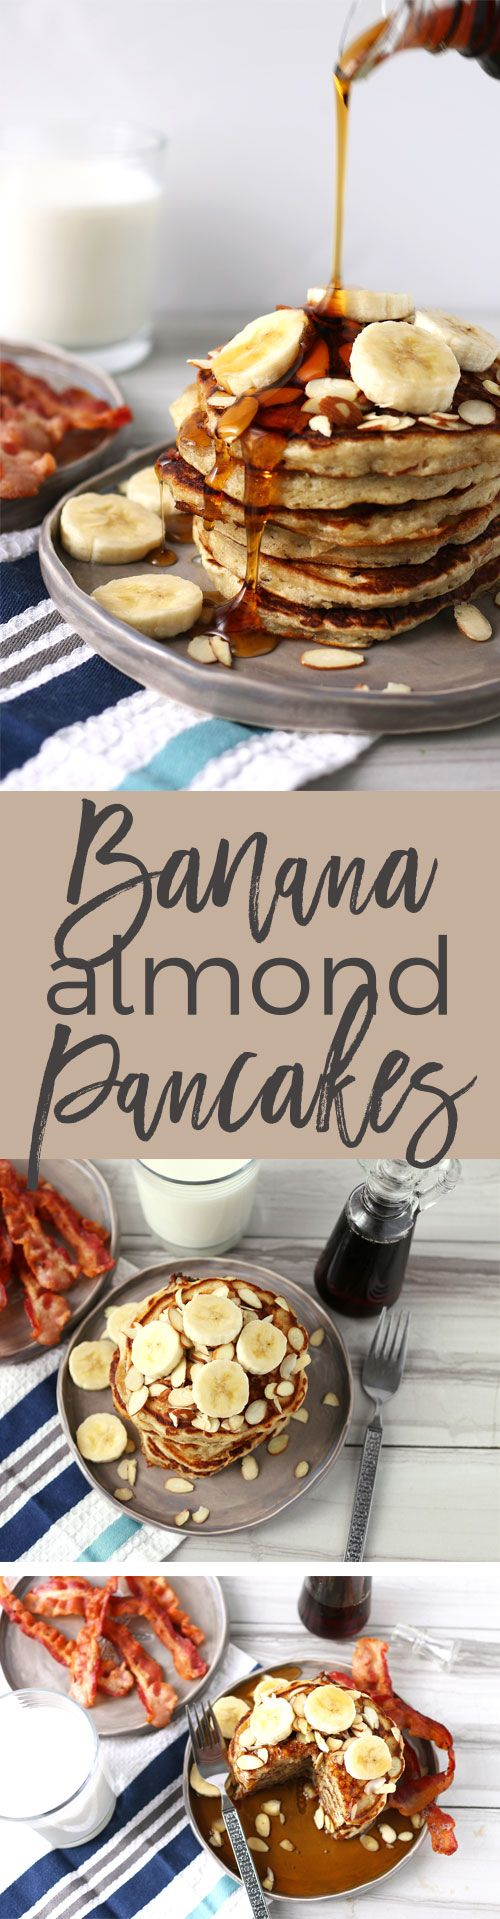 These banana almond pancakes are perfect for weekend breakfasts! Forget about banana bread - use your overripe bananas to make this easy pancake recipe. | honeyandbirch.com